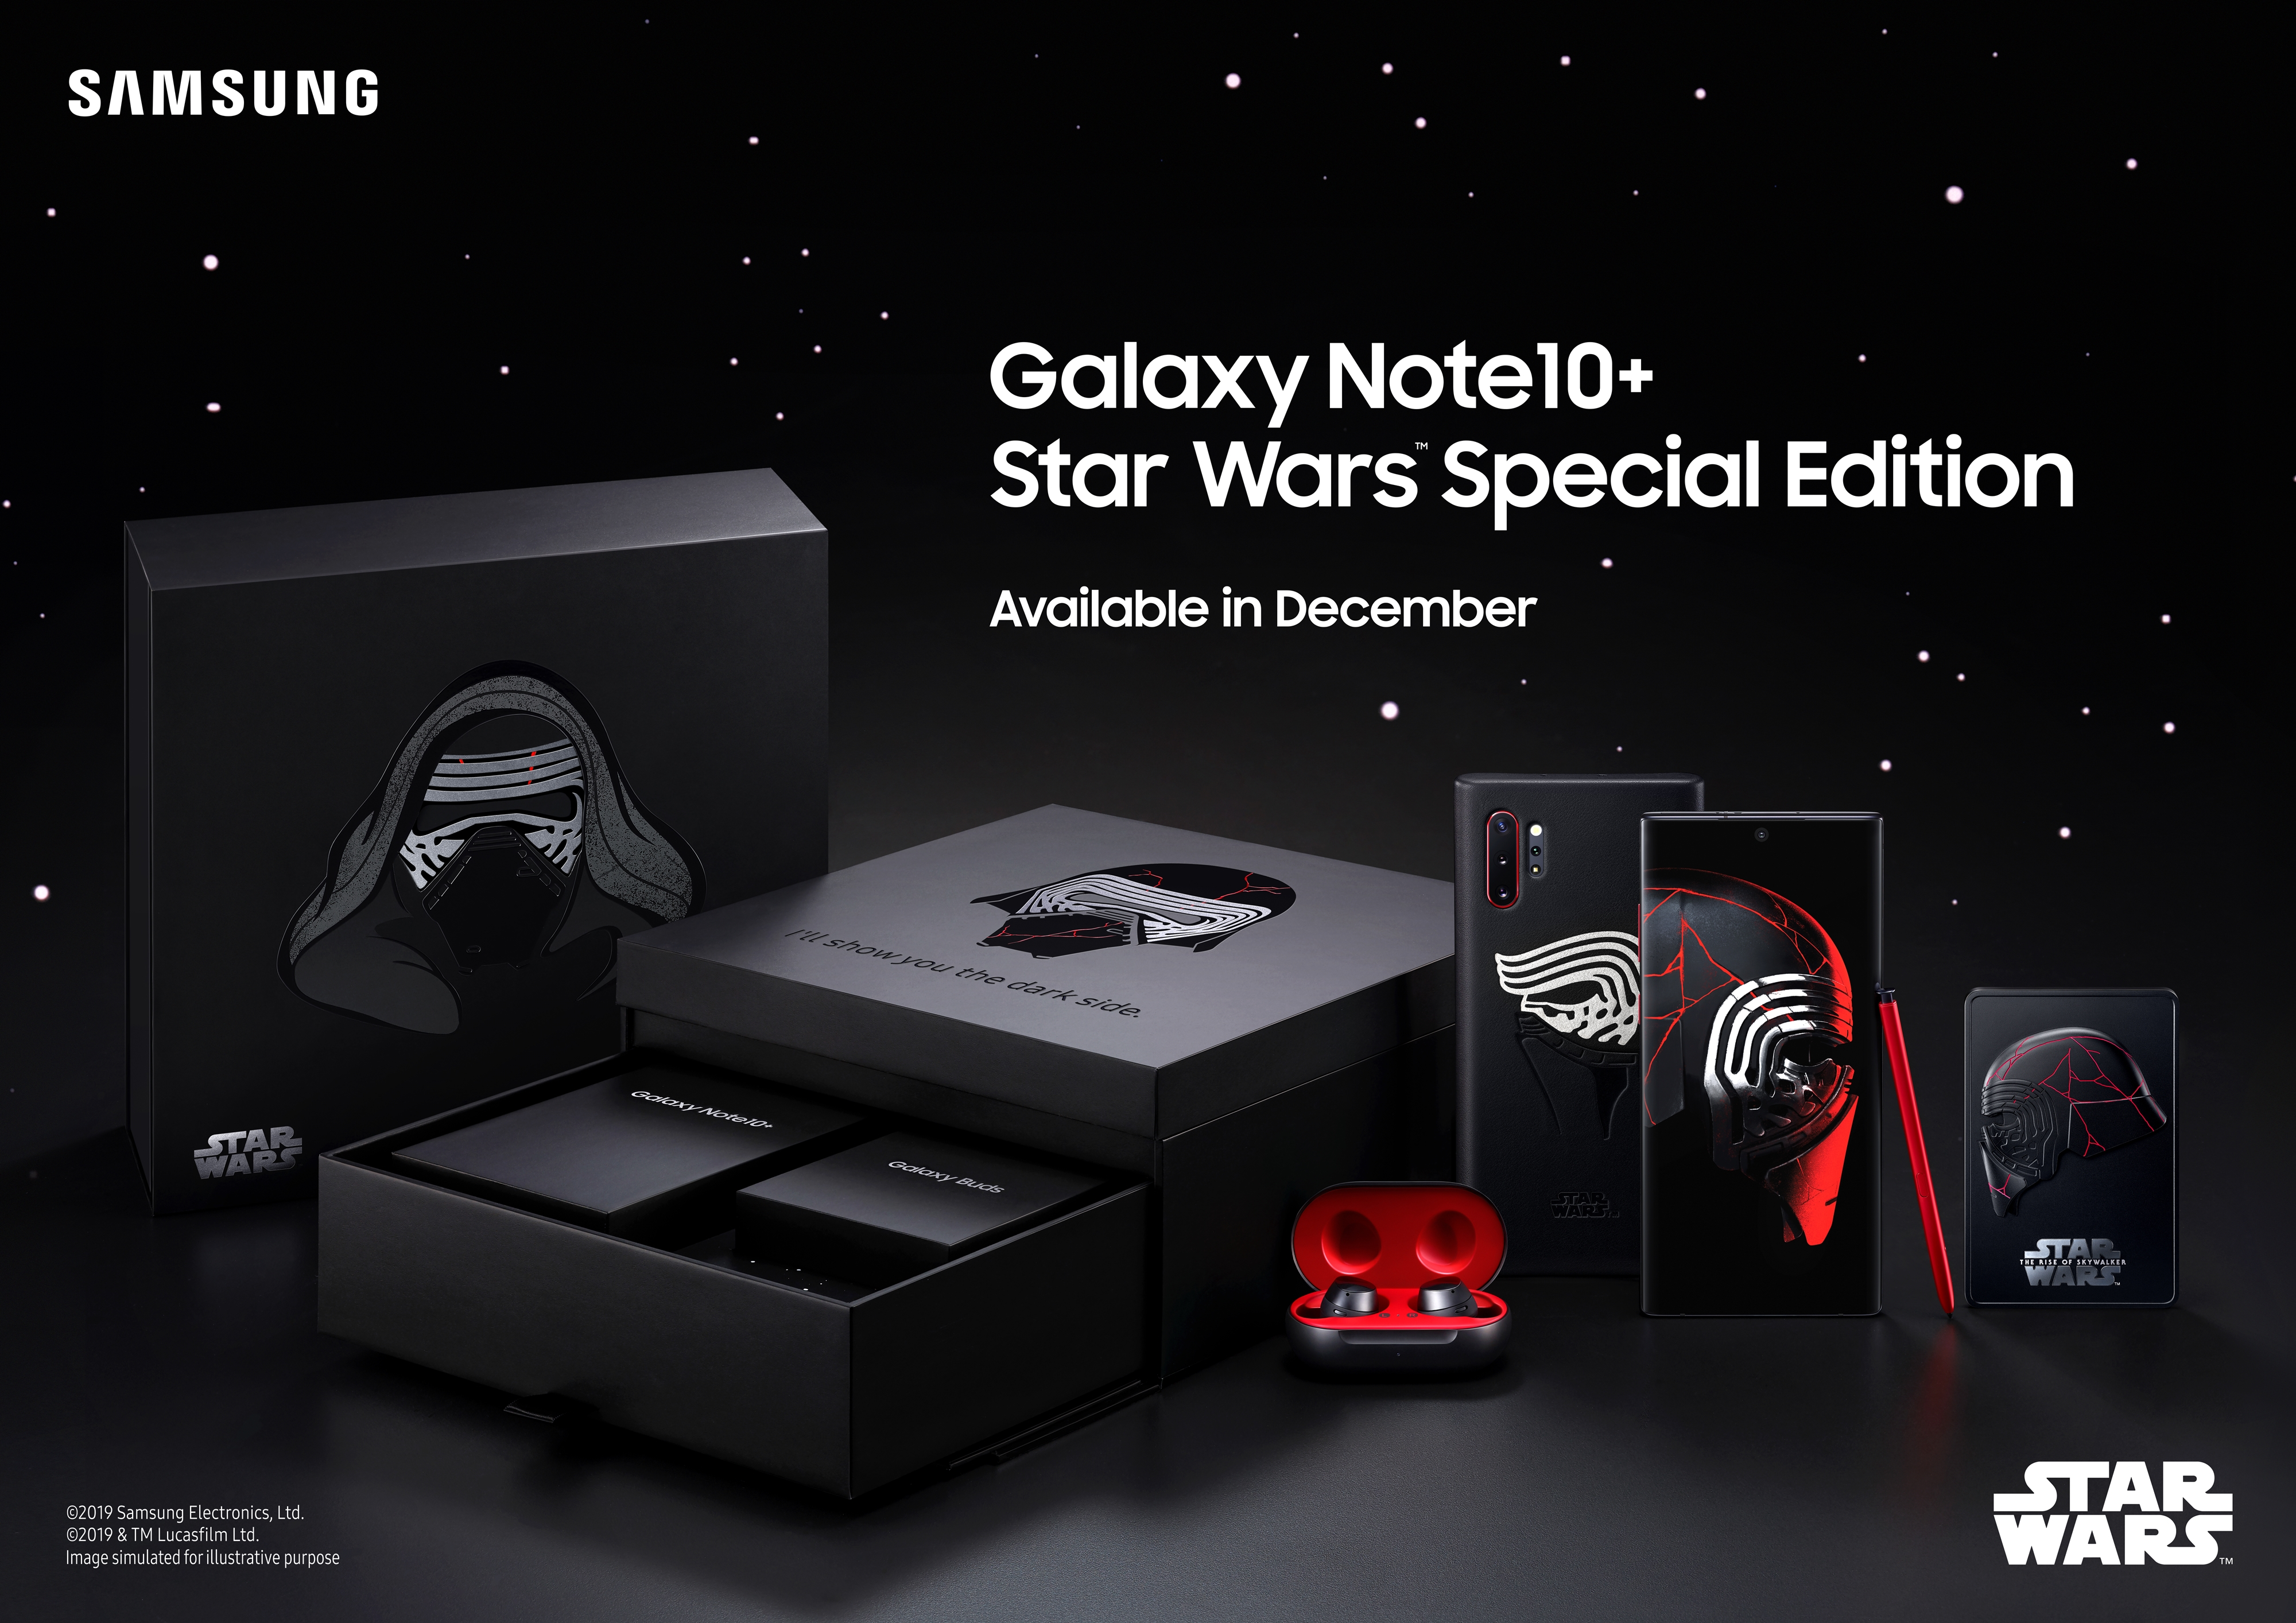 Samsung Announces Galaxy Note10 Star Wars Edition With